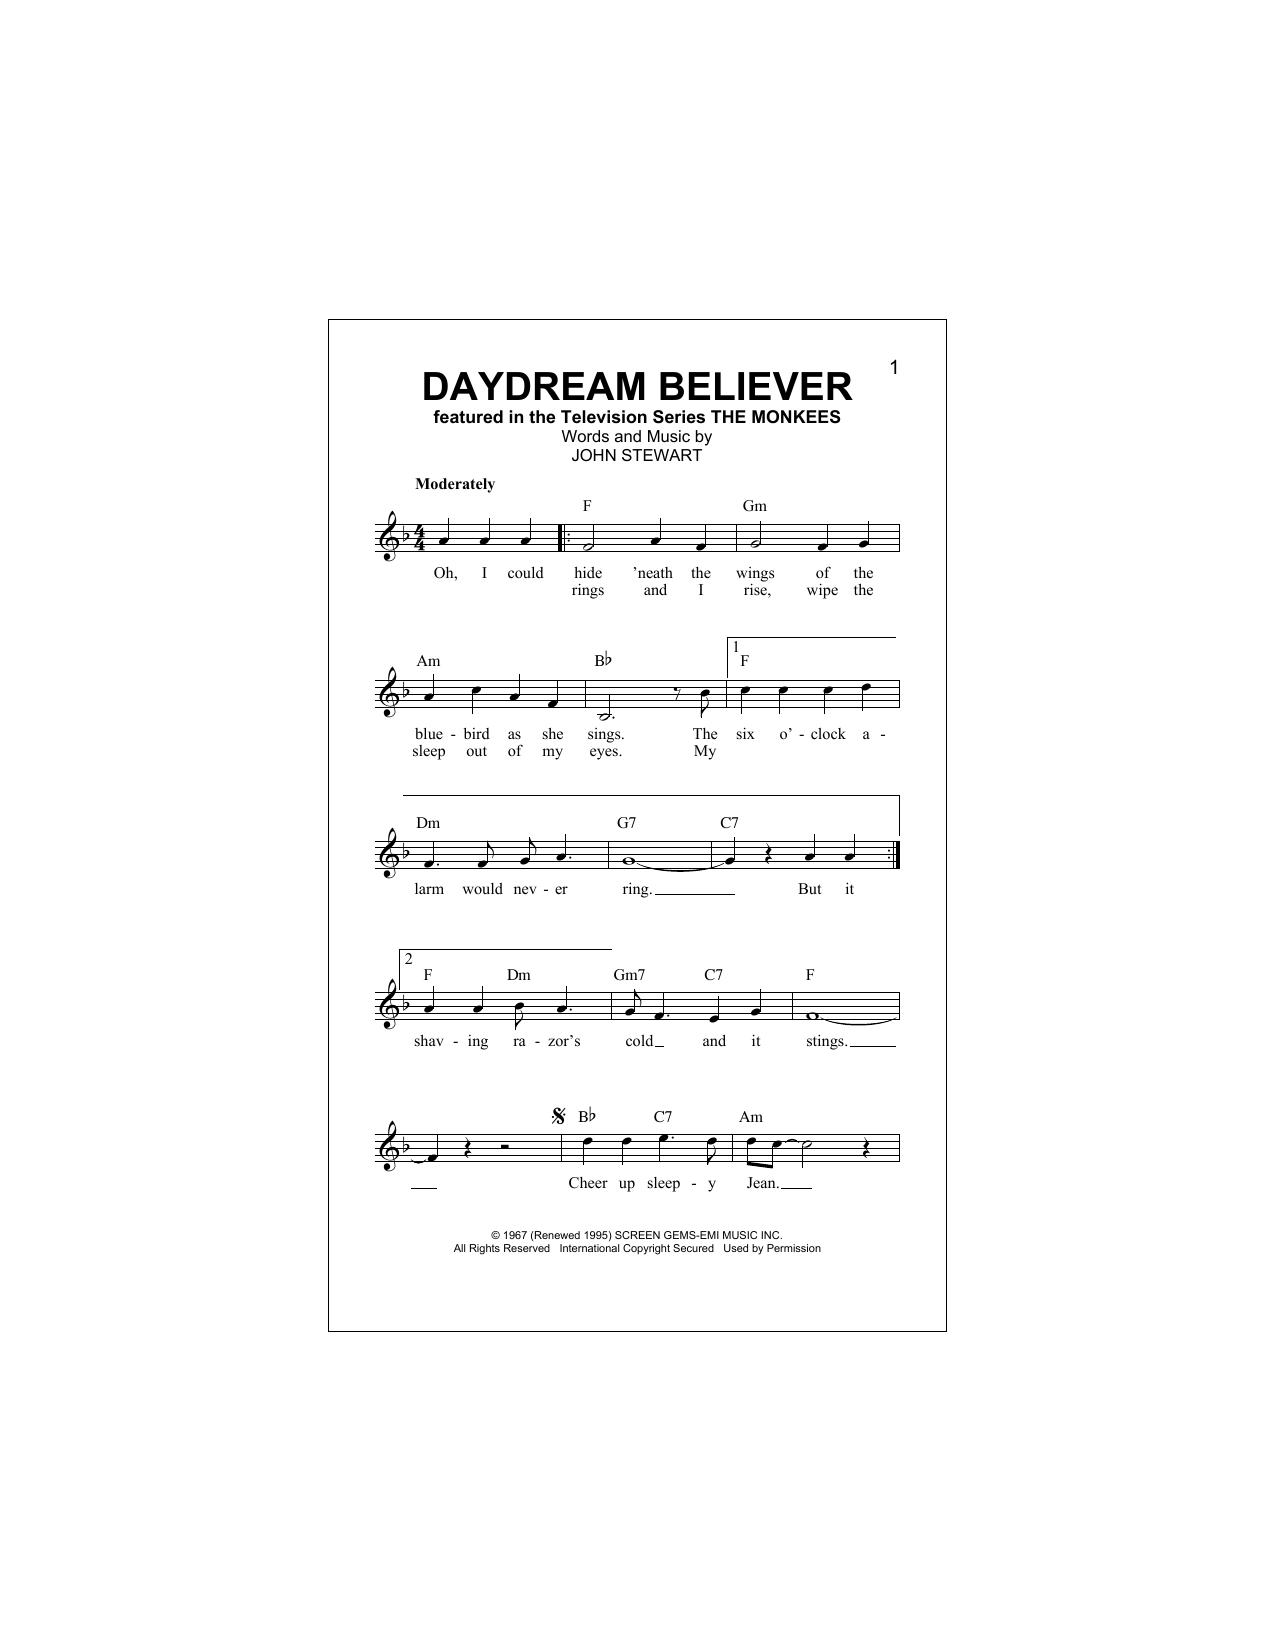 Daydream Believer The Monkees Melody Line Lyrics Chords